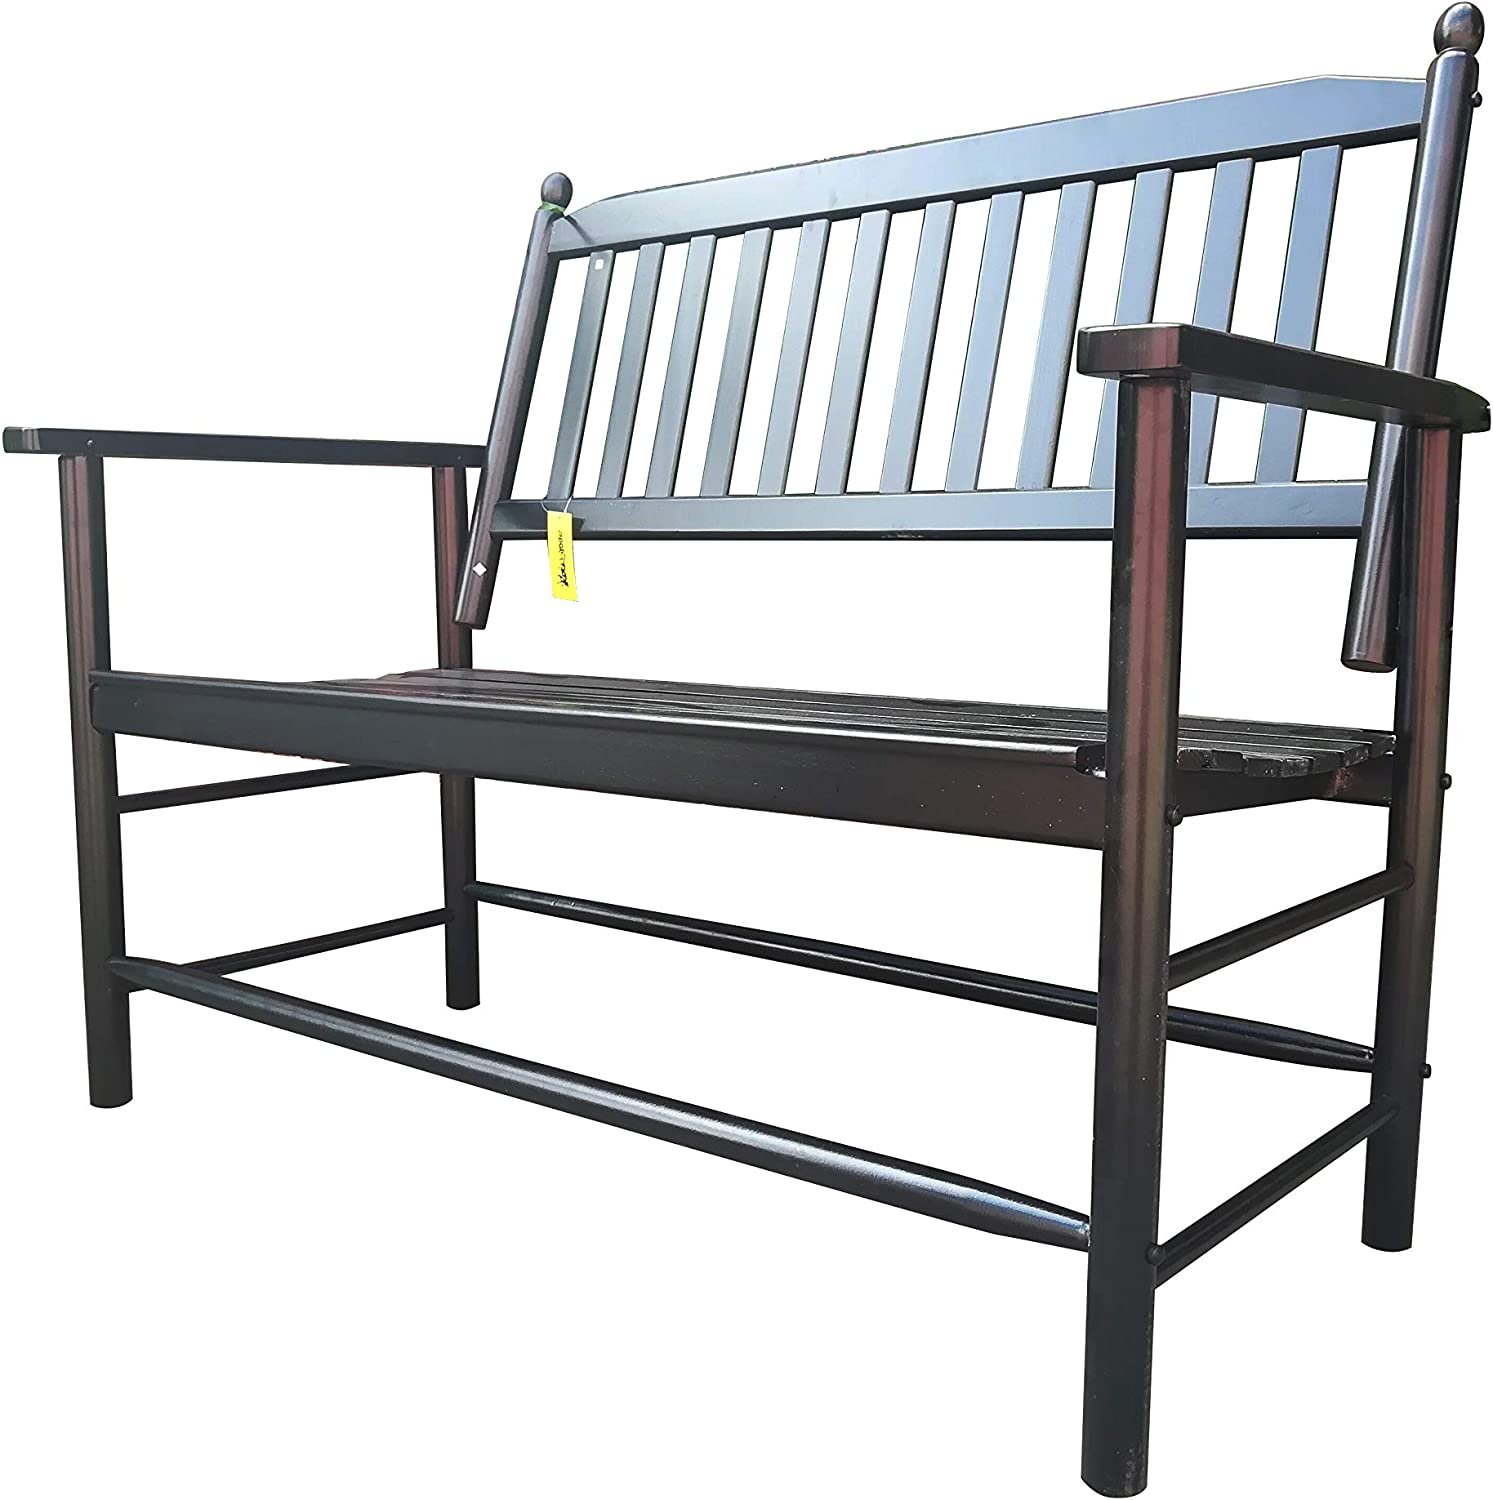 Rockingrocker - A059BK Black Outdoor Wood Garden Bench - Suitable for Indoor or Outdoor - Assembled Dimensions:W49.21 x H40.16 x D26.97 inches